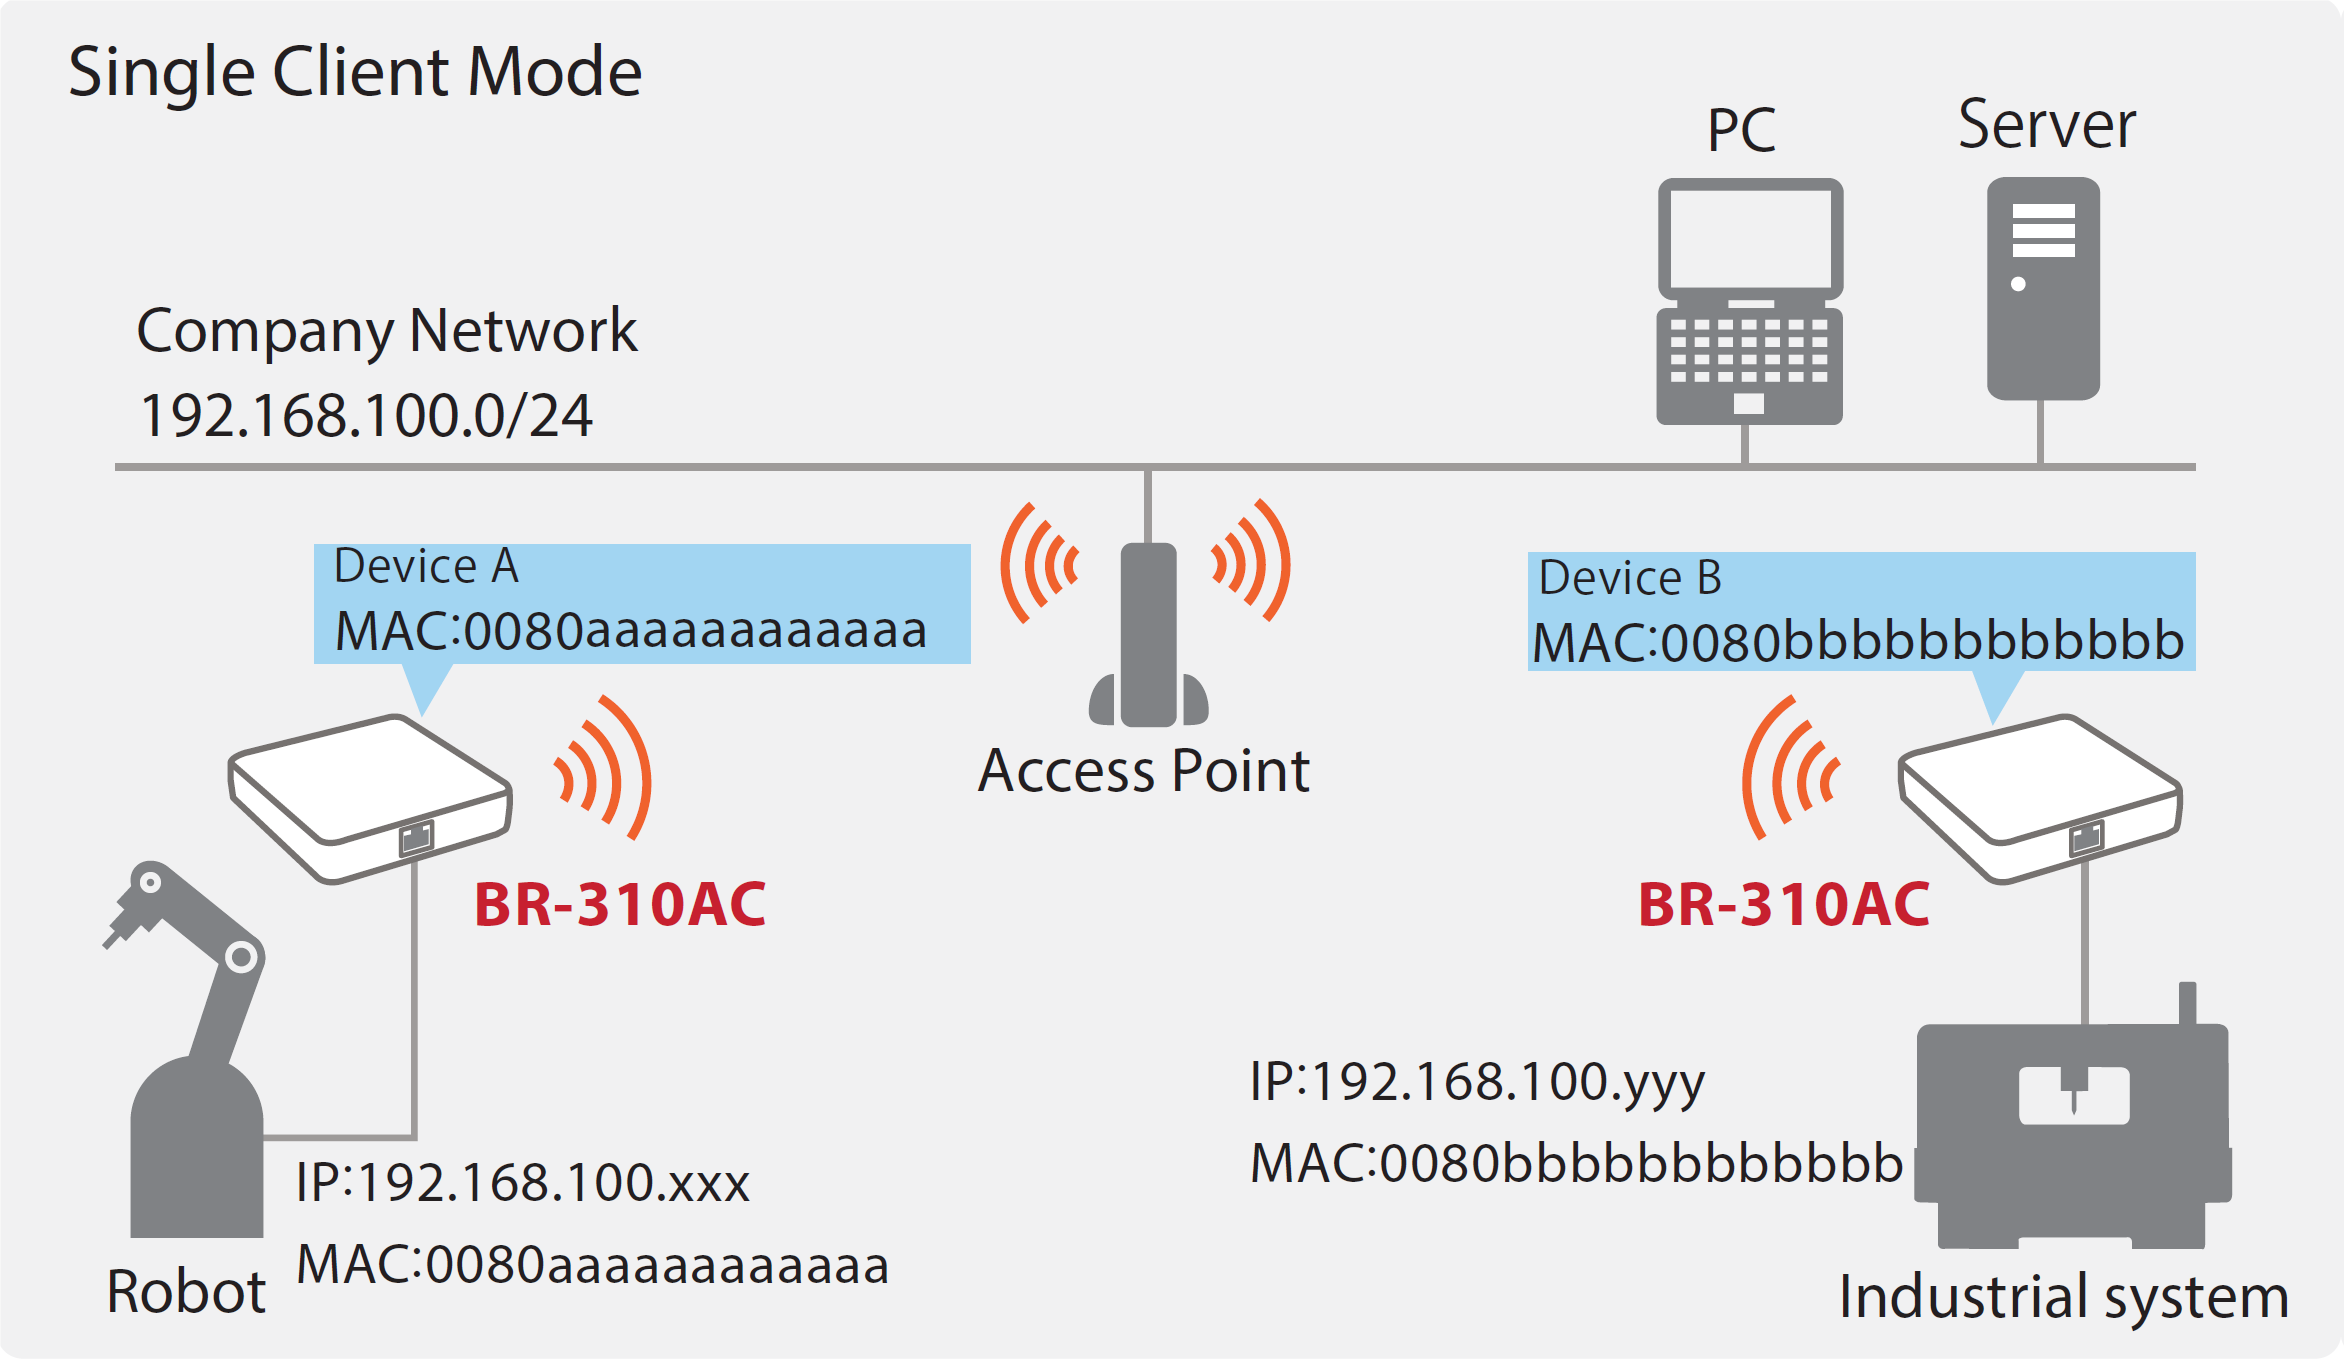 BR-310AC Single Client Mode Image